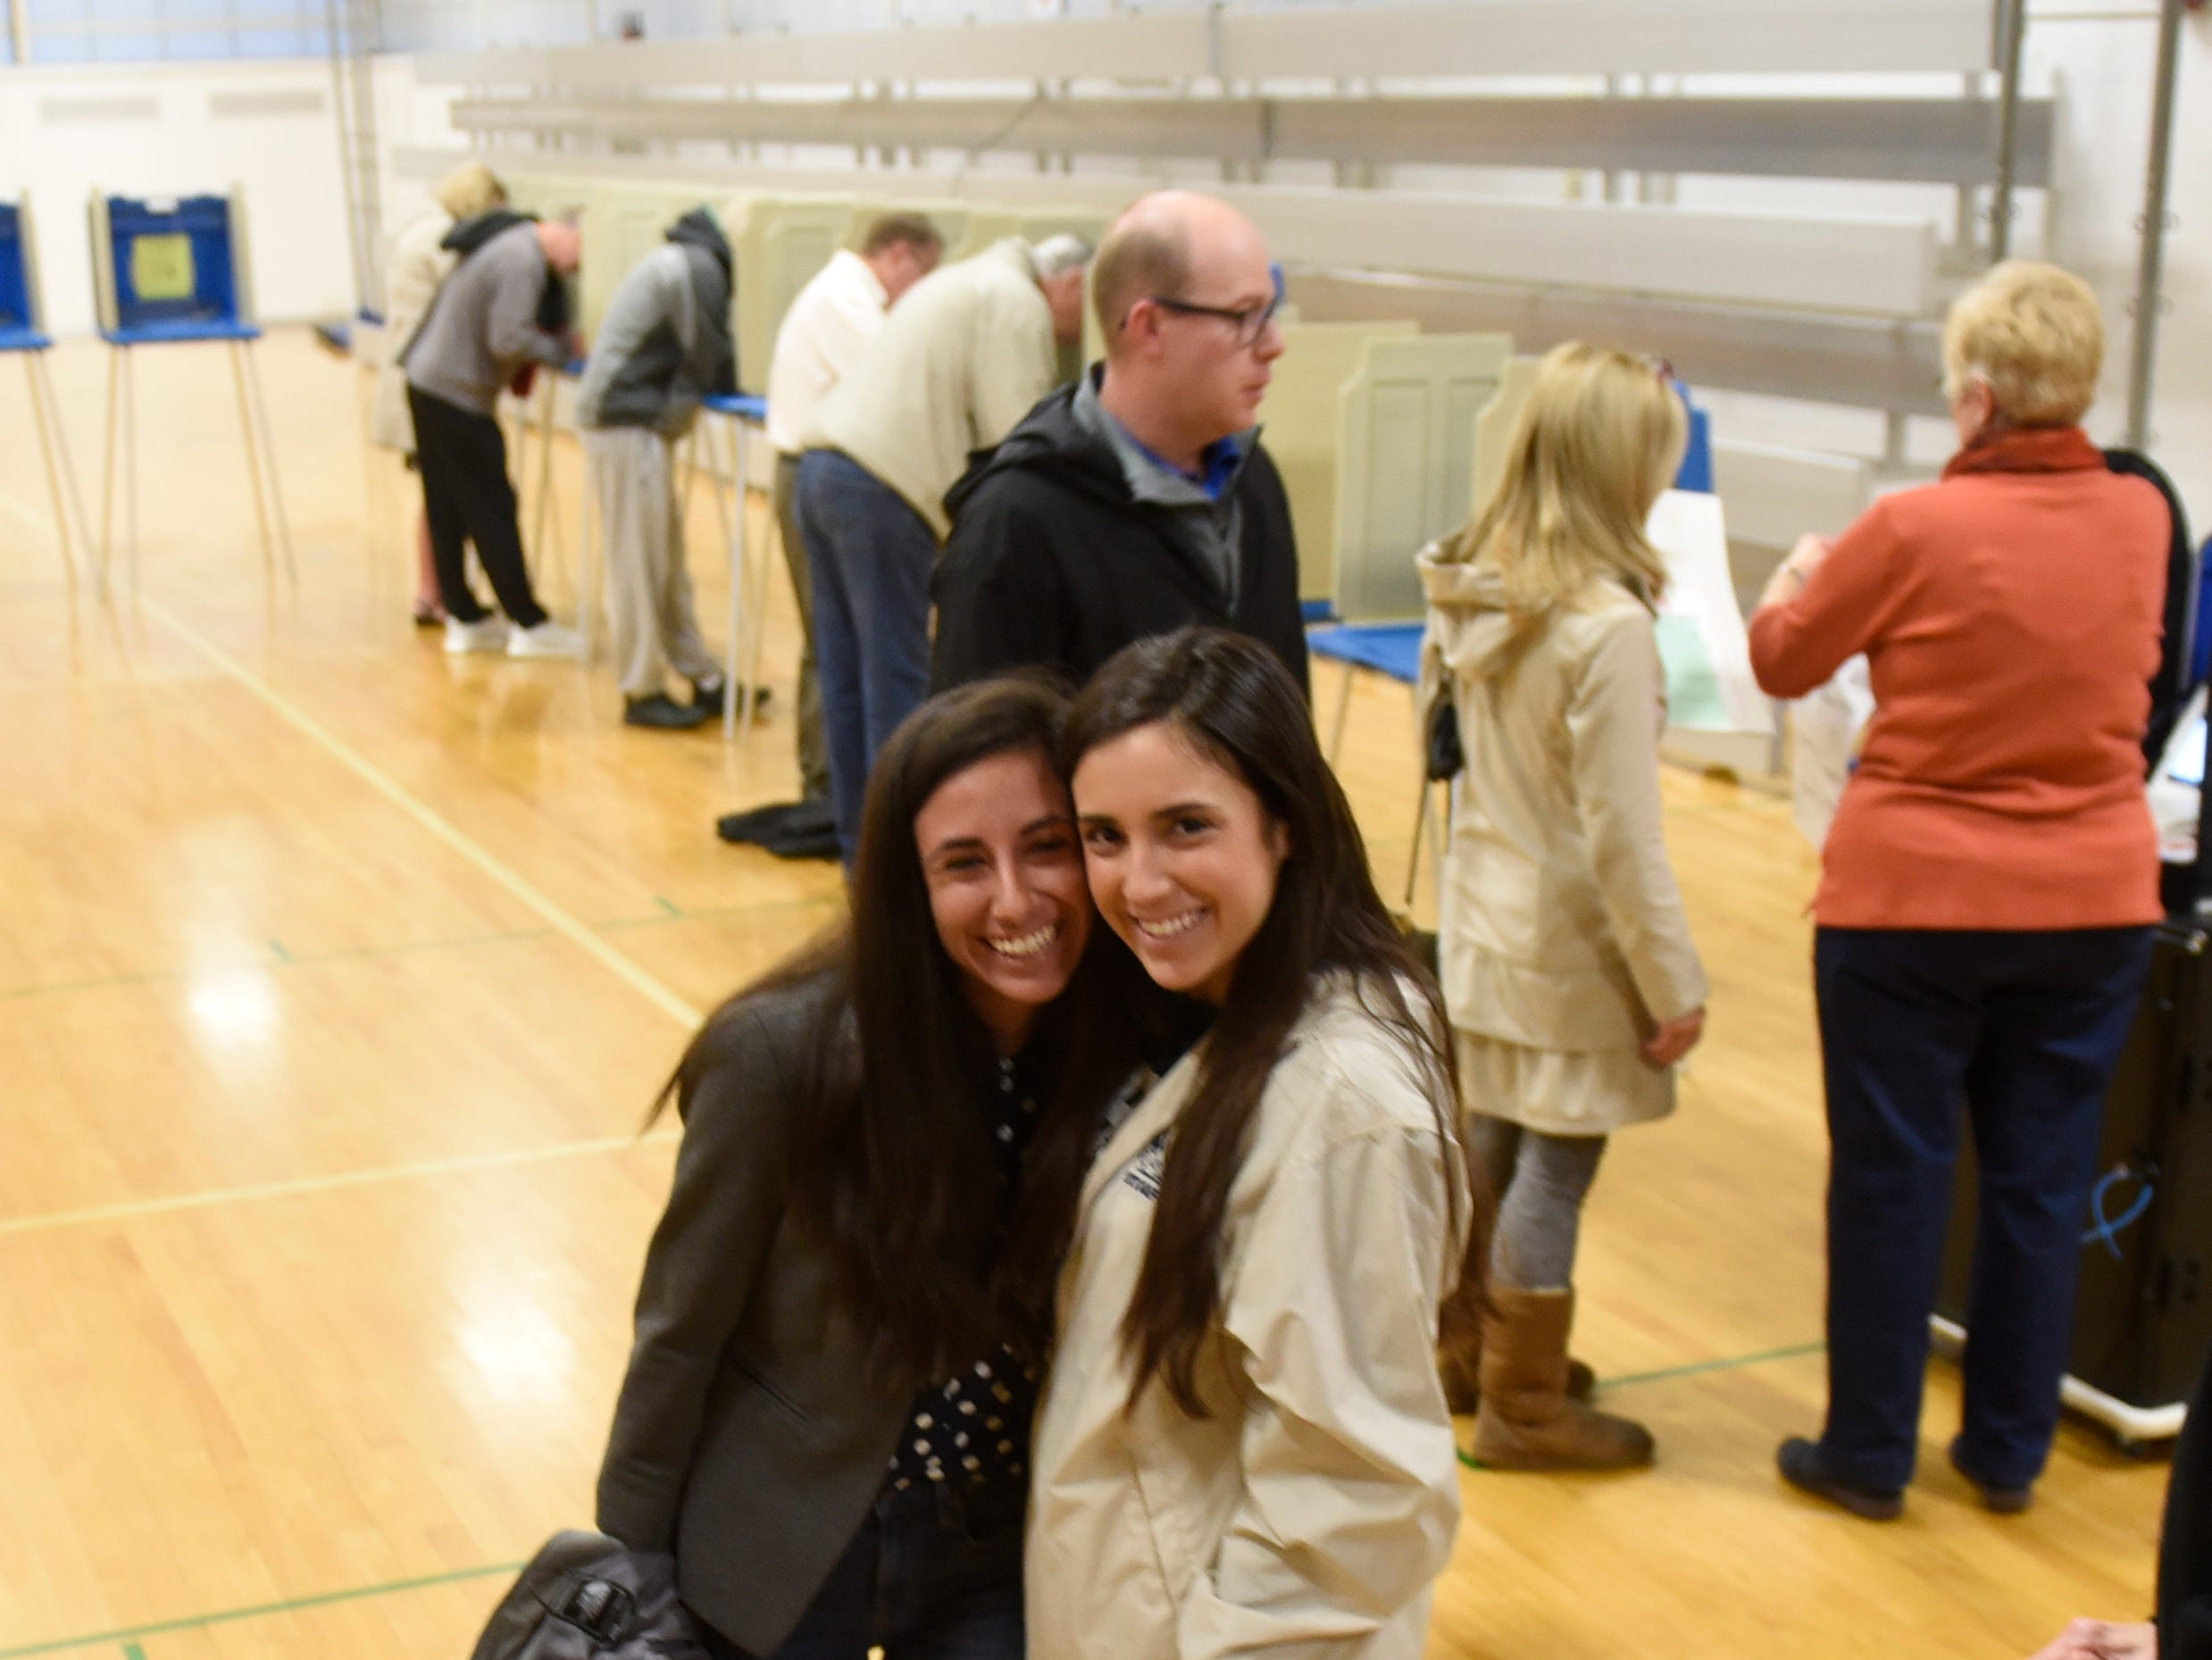 Mari Manoogian and her sister Alis Manoogian vote together at Derby Middle School on election day Nov. 6, 2018.